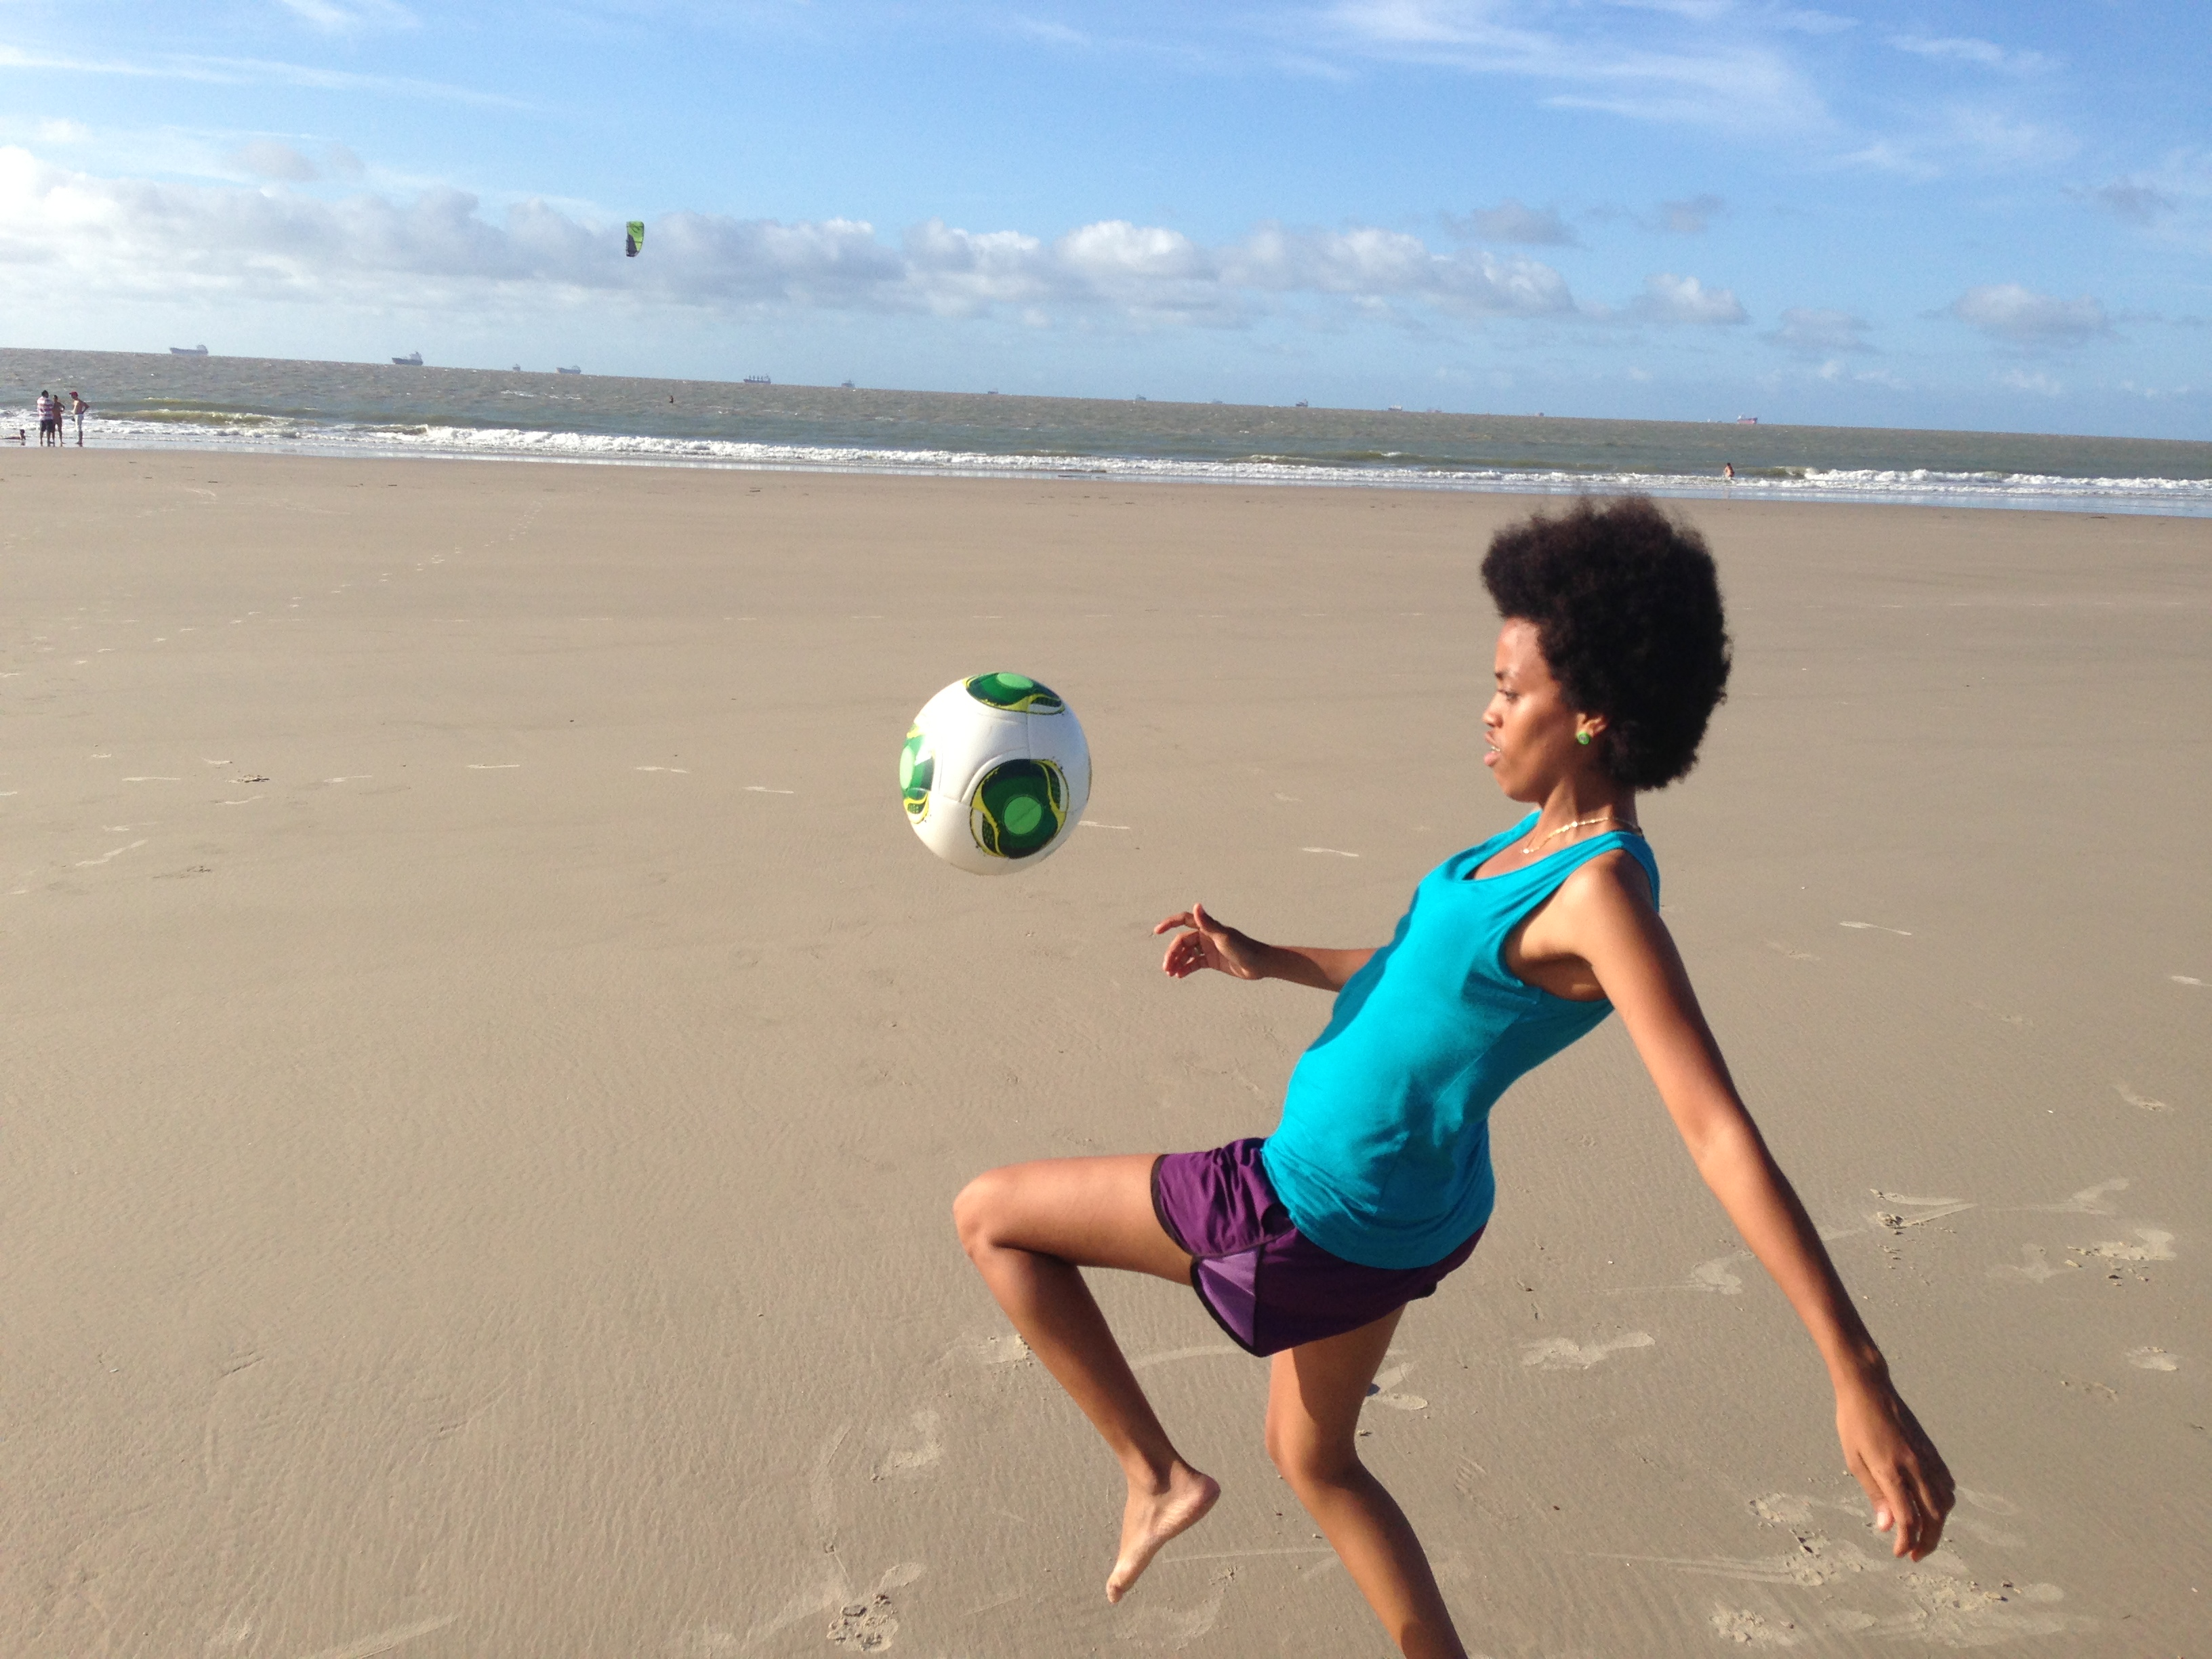 Diane believes in the power of football to transform children's lives in a positive way